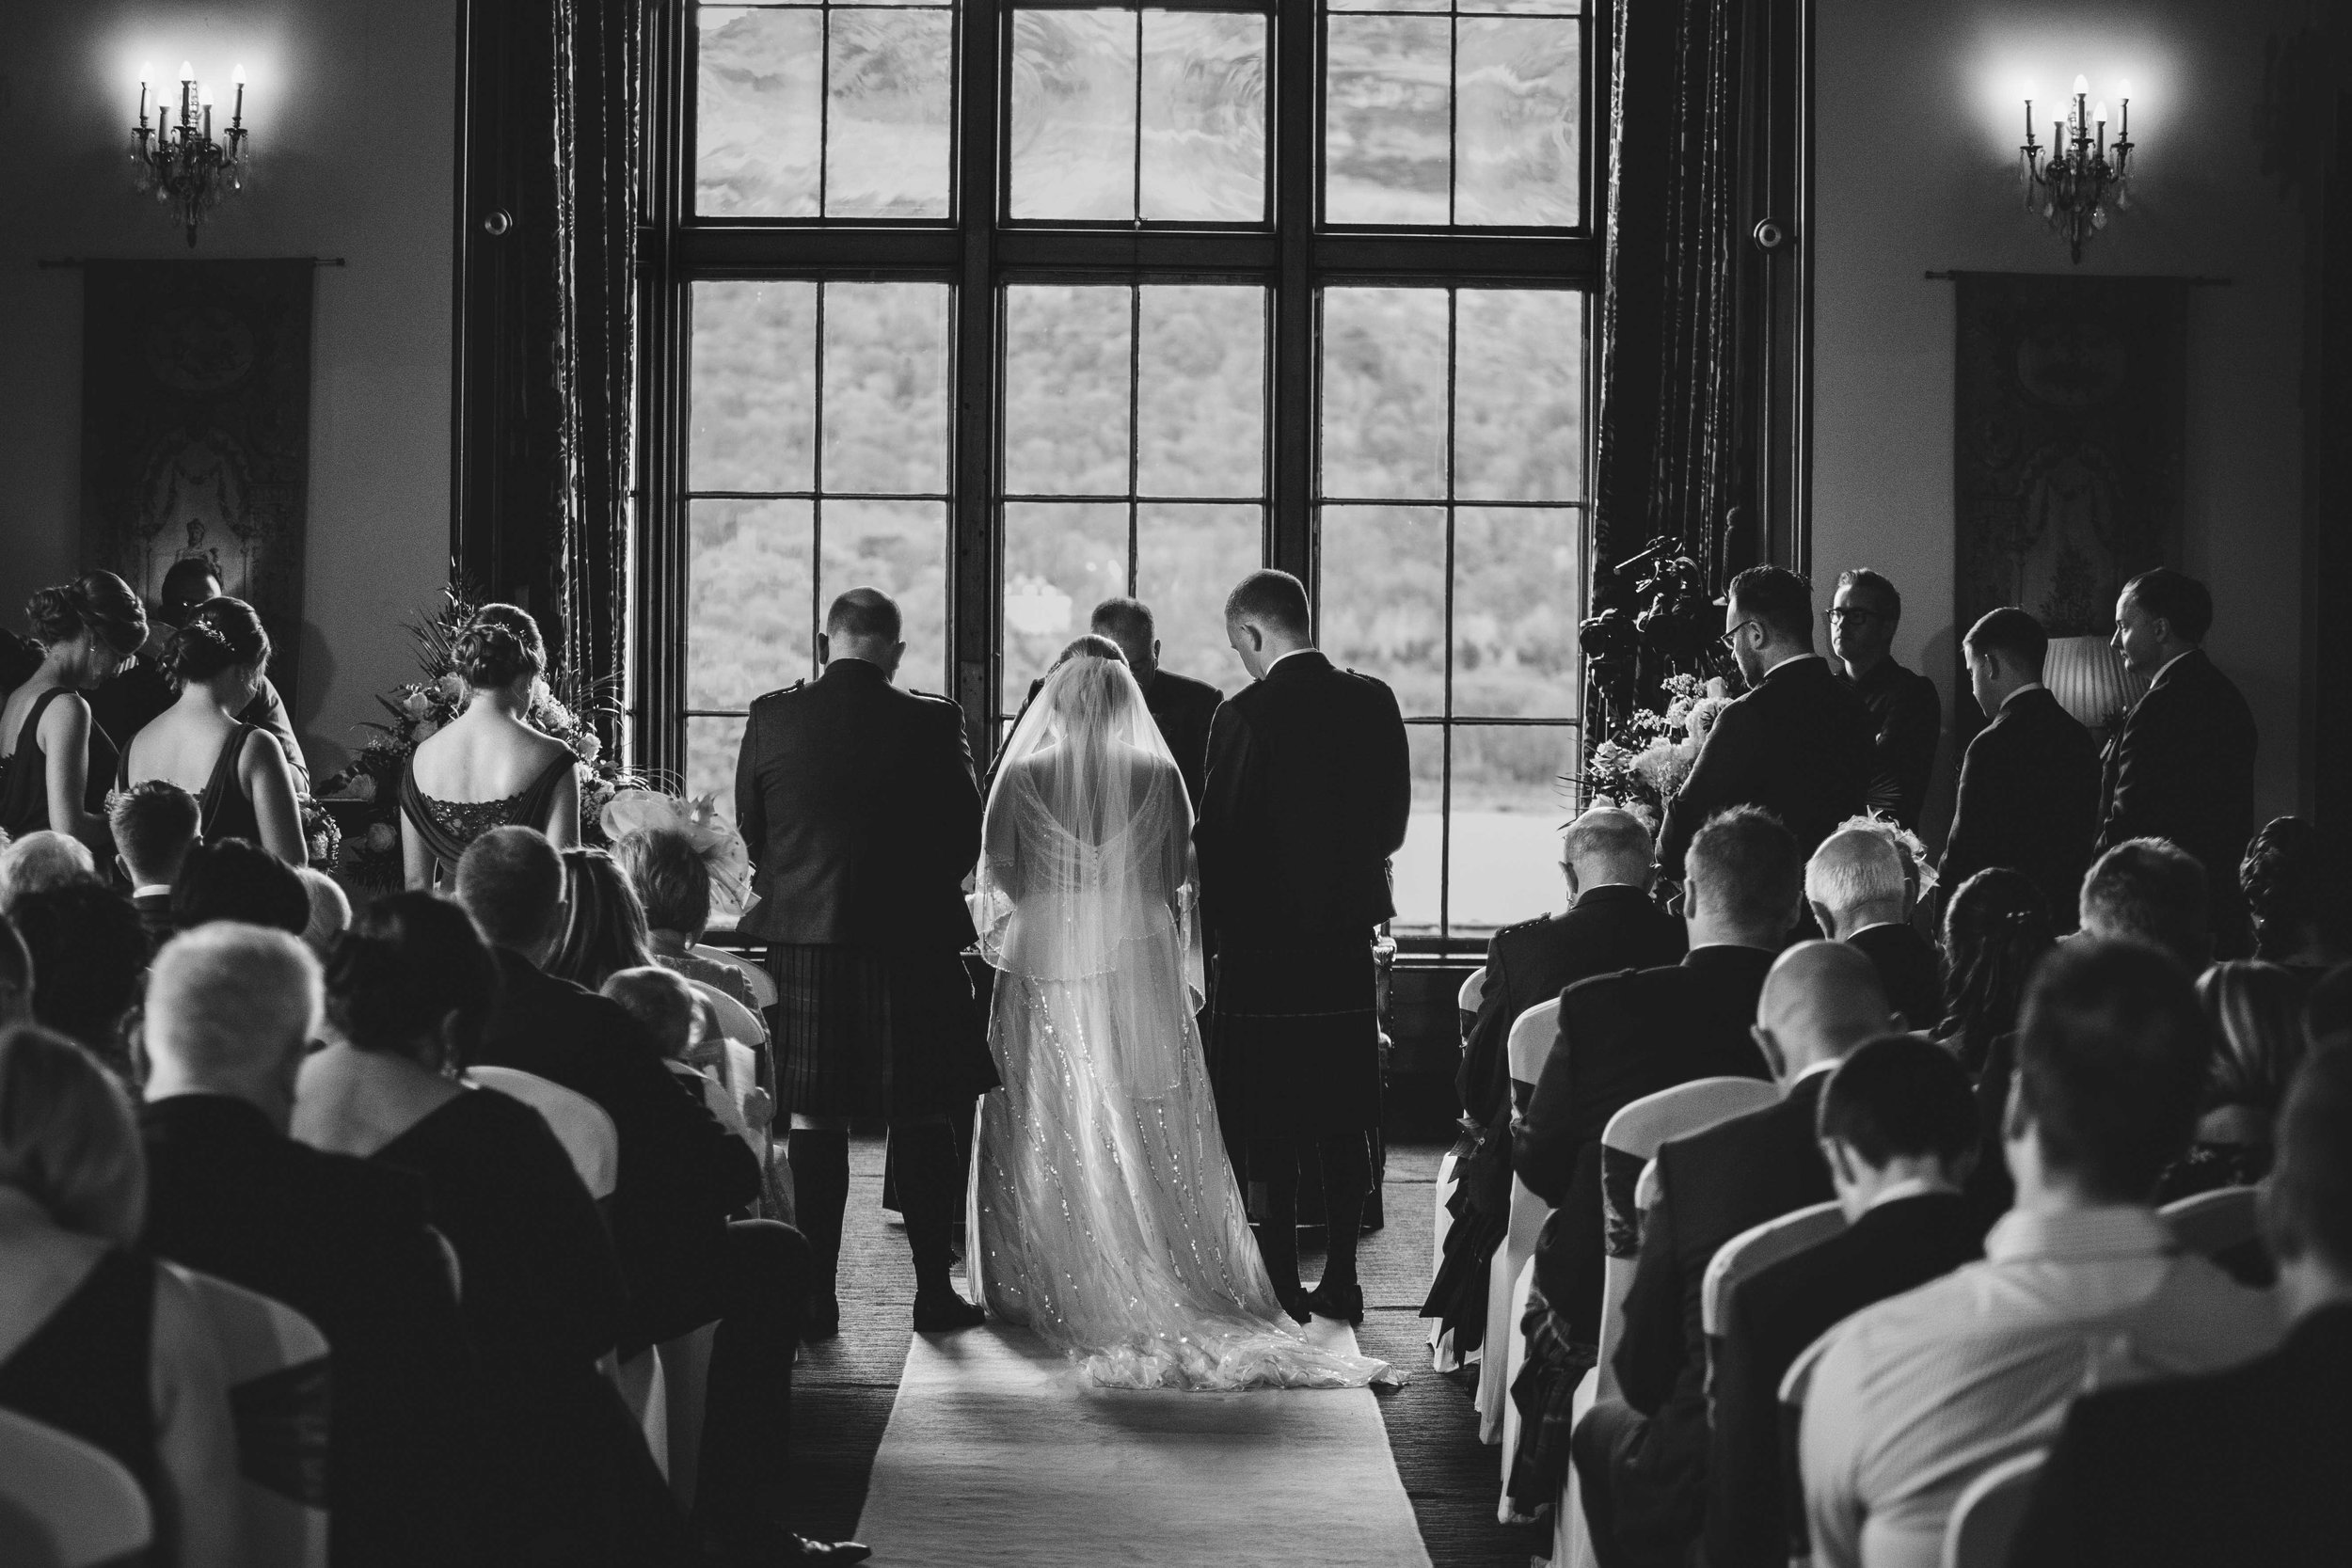 Mar Hall Wedding 2018, Haminsh & Emma McEwan 25.JPG